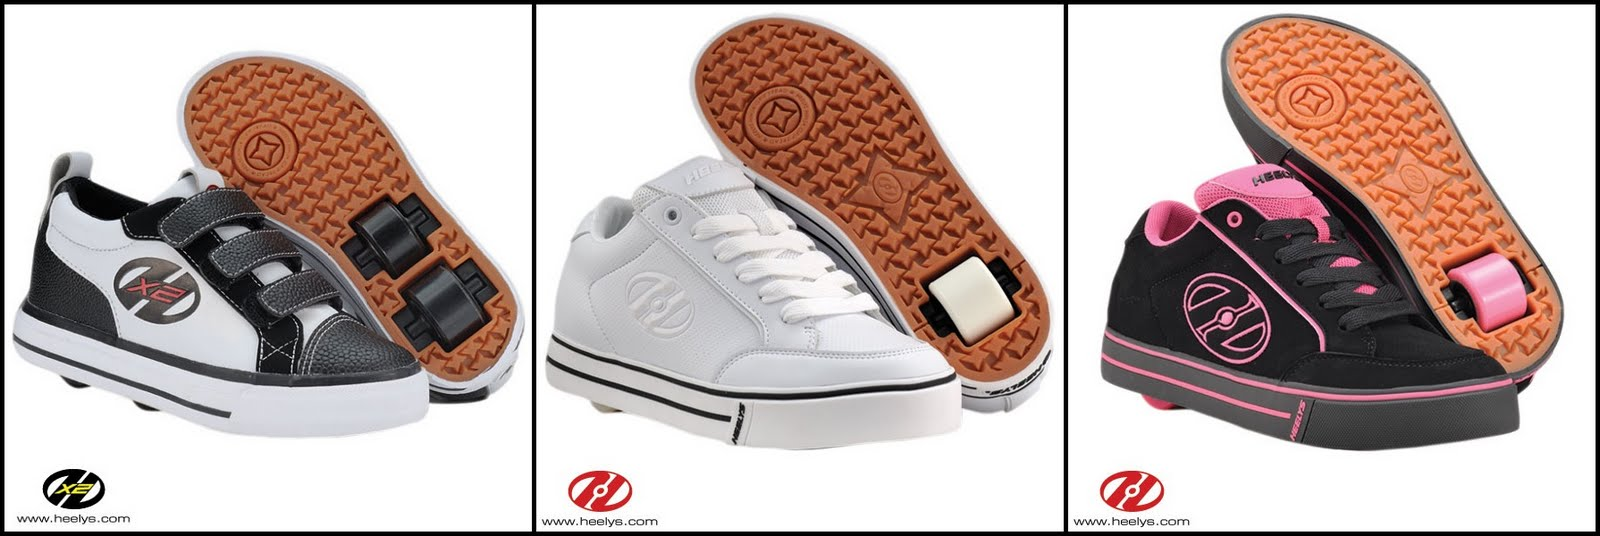 Heely skate shoes reviews - Giving Users The Ability To Transition From A Walk To A Roll By Shifting The Weight To Their Heels Or To Transform Heelys Into Street Shoes By Removing